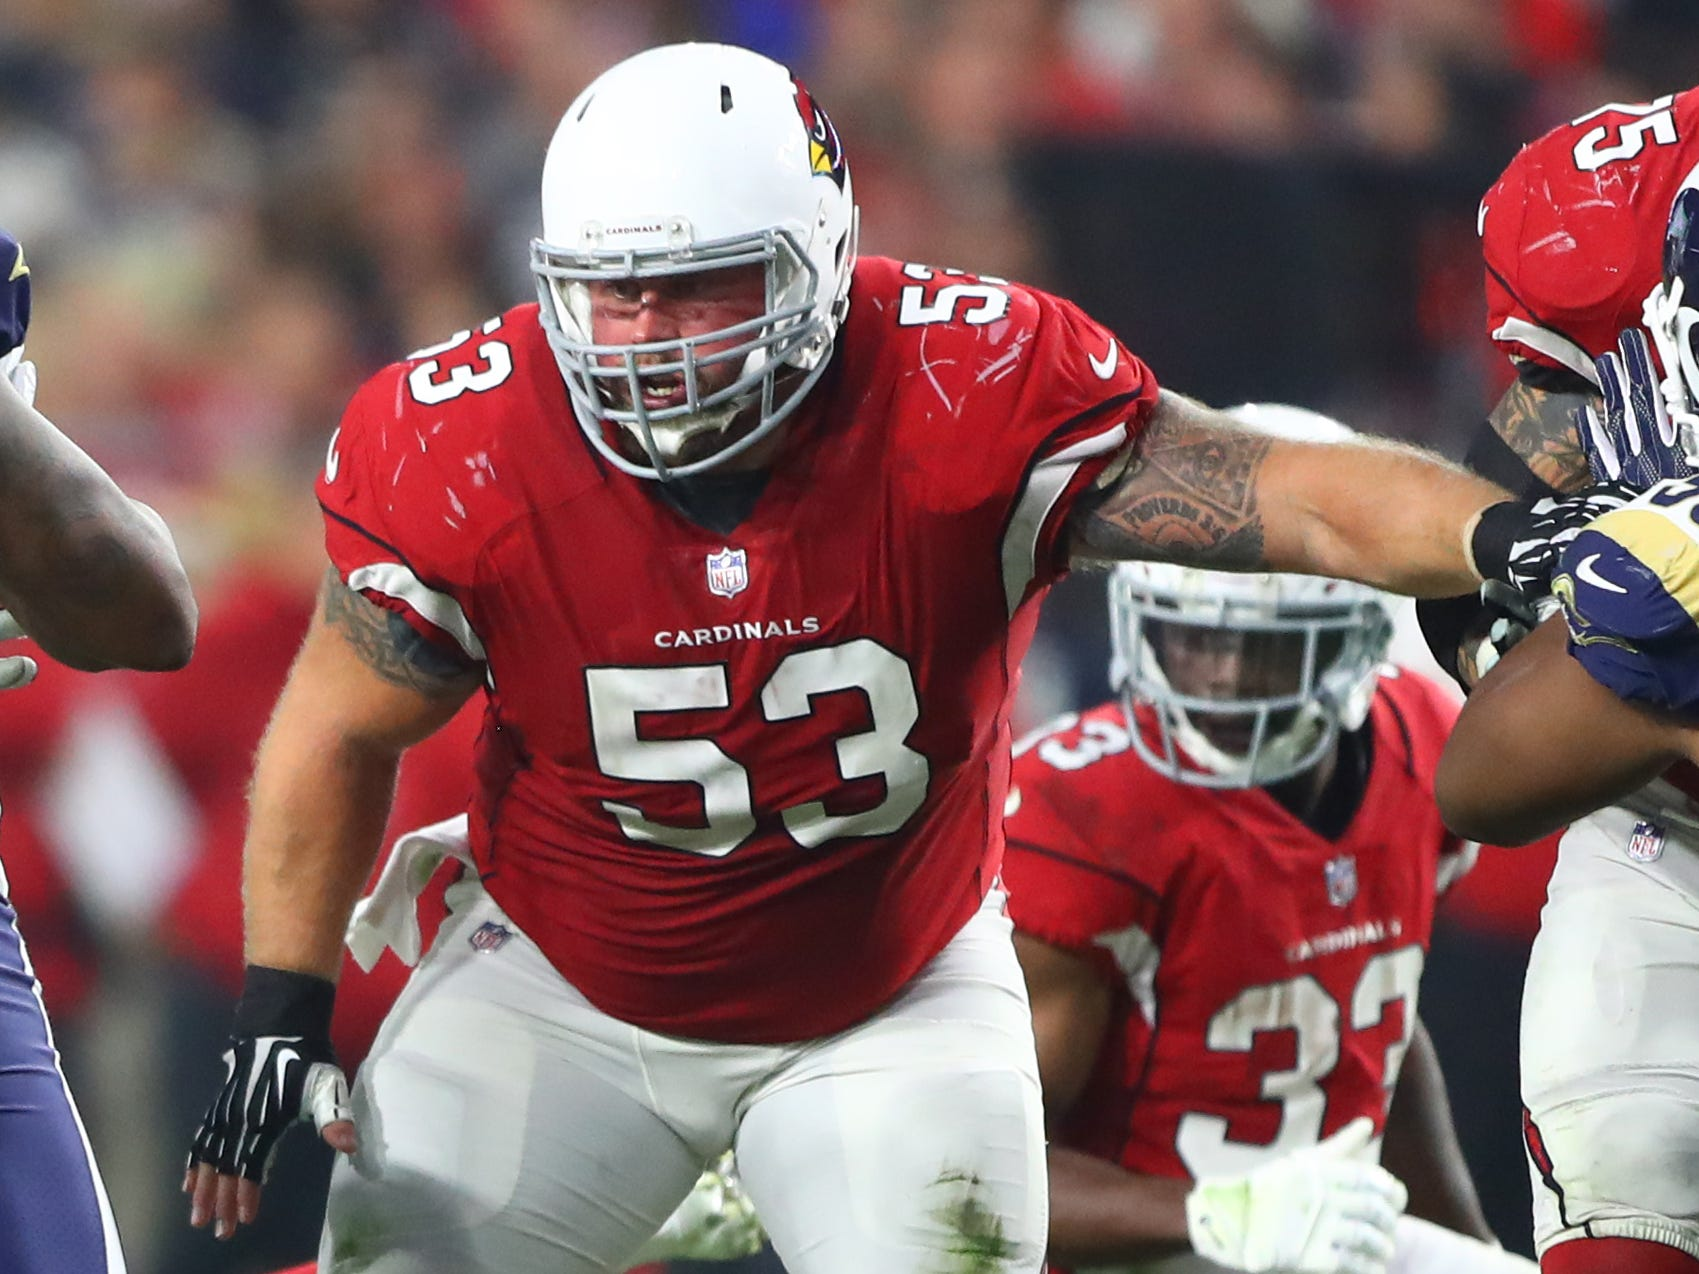 A.Q. Shipley, C, Arizona Cardinals (torn ACL, out for season)